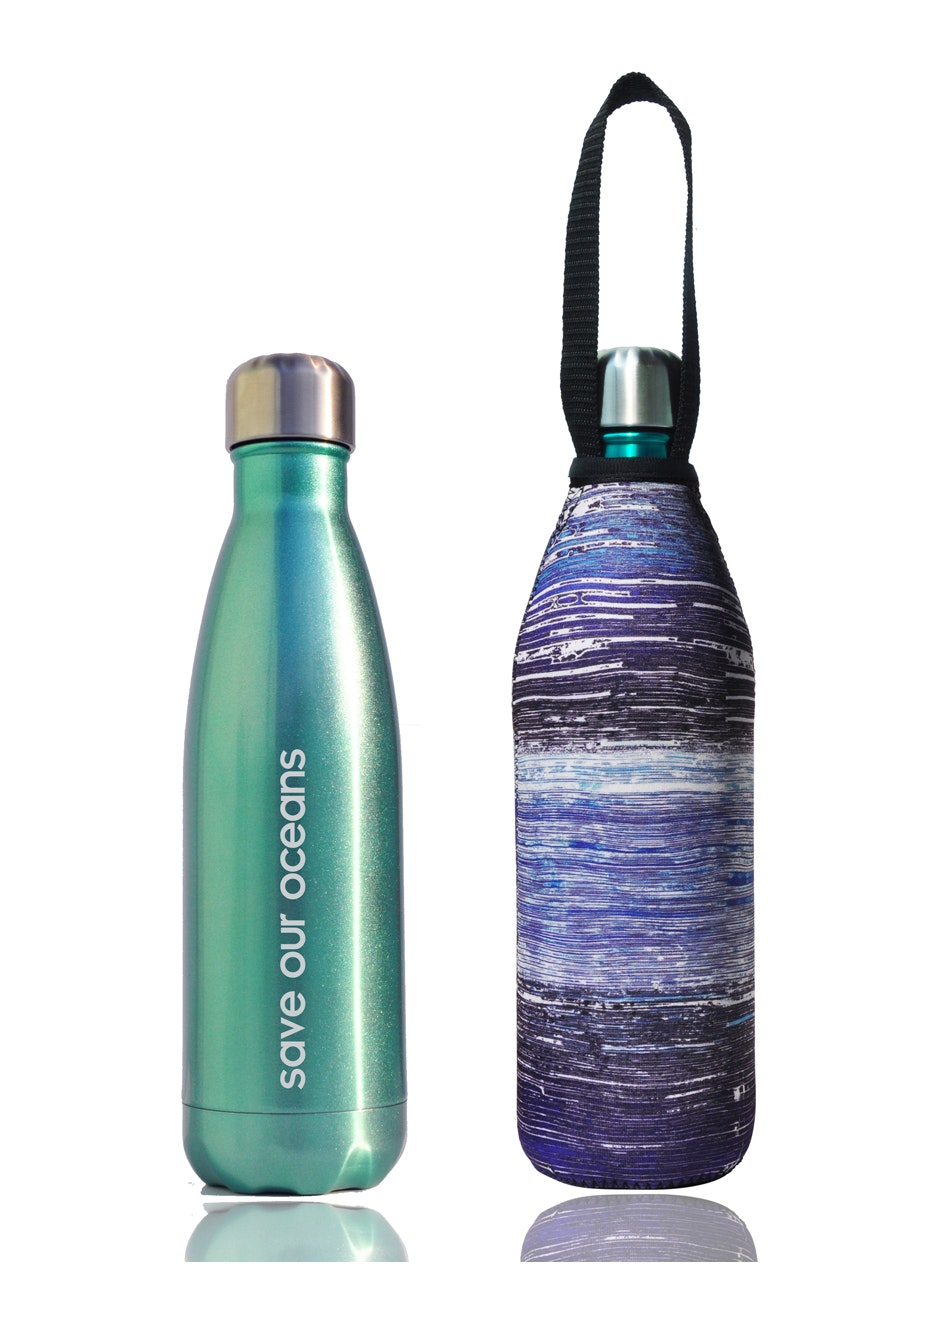 BBBYO - Future Bottle+ Carry Cover (Mist Print) -750 ml  Mint